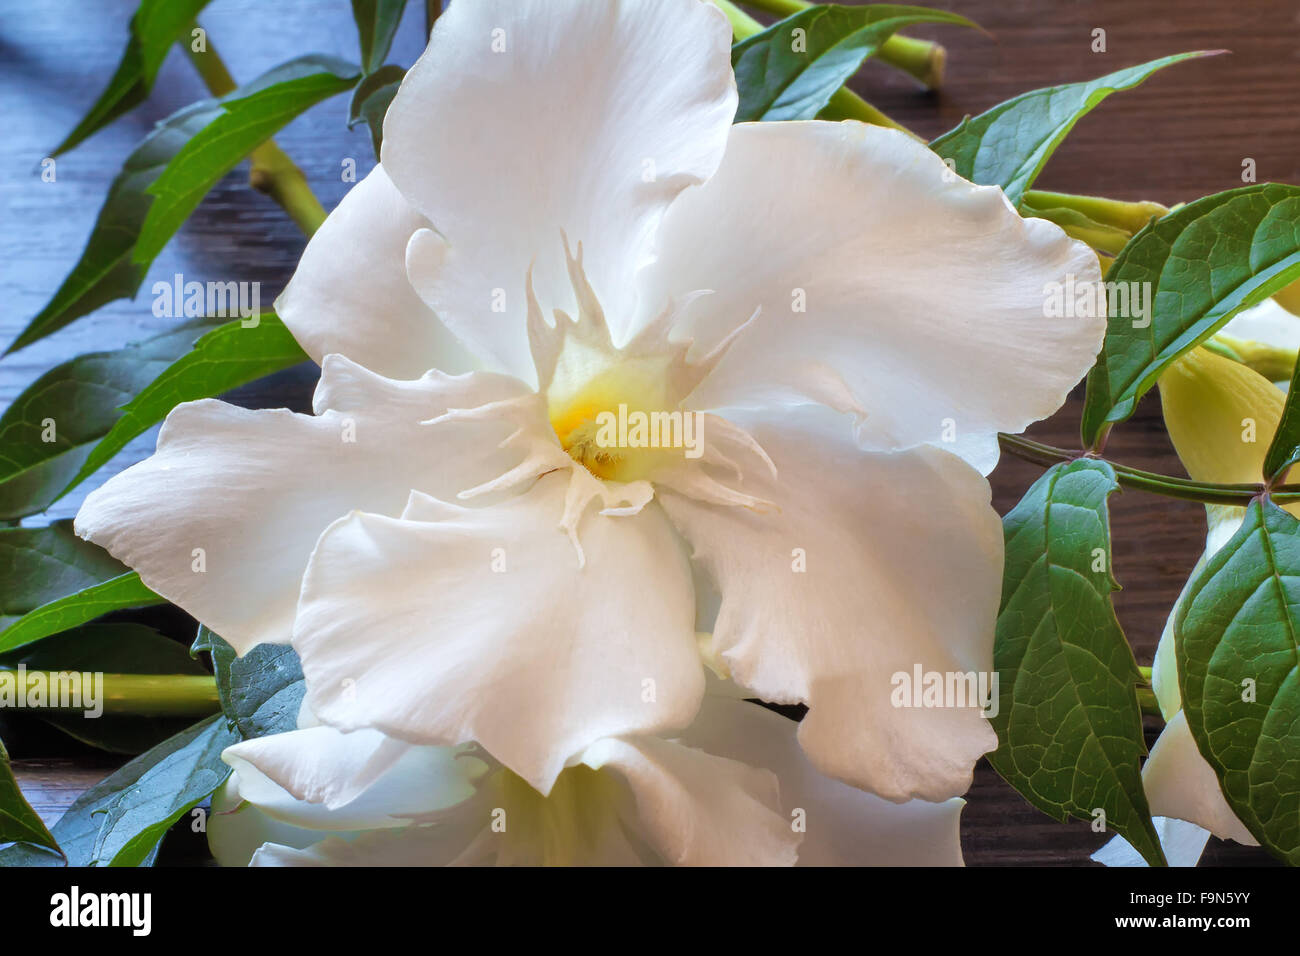 A Close Up Of Beautiful White Oleander Flower Against Green Leaves